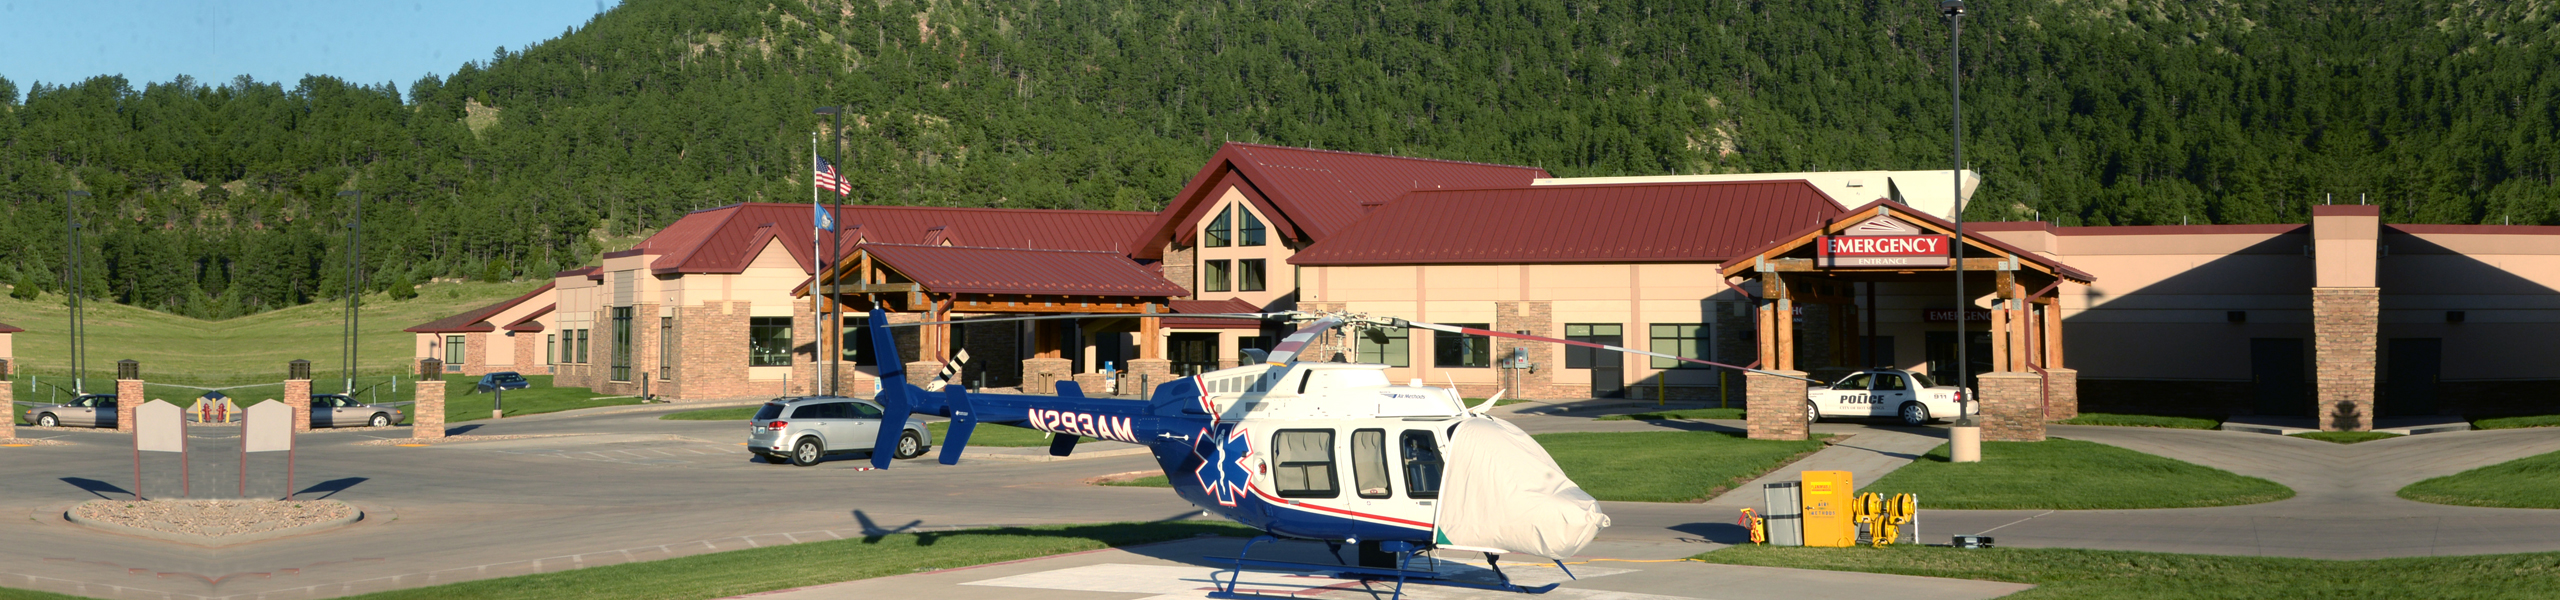 Banner is a picture of the hospital with a police car in the entrance and a Medical Helicopter on the landing pad.